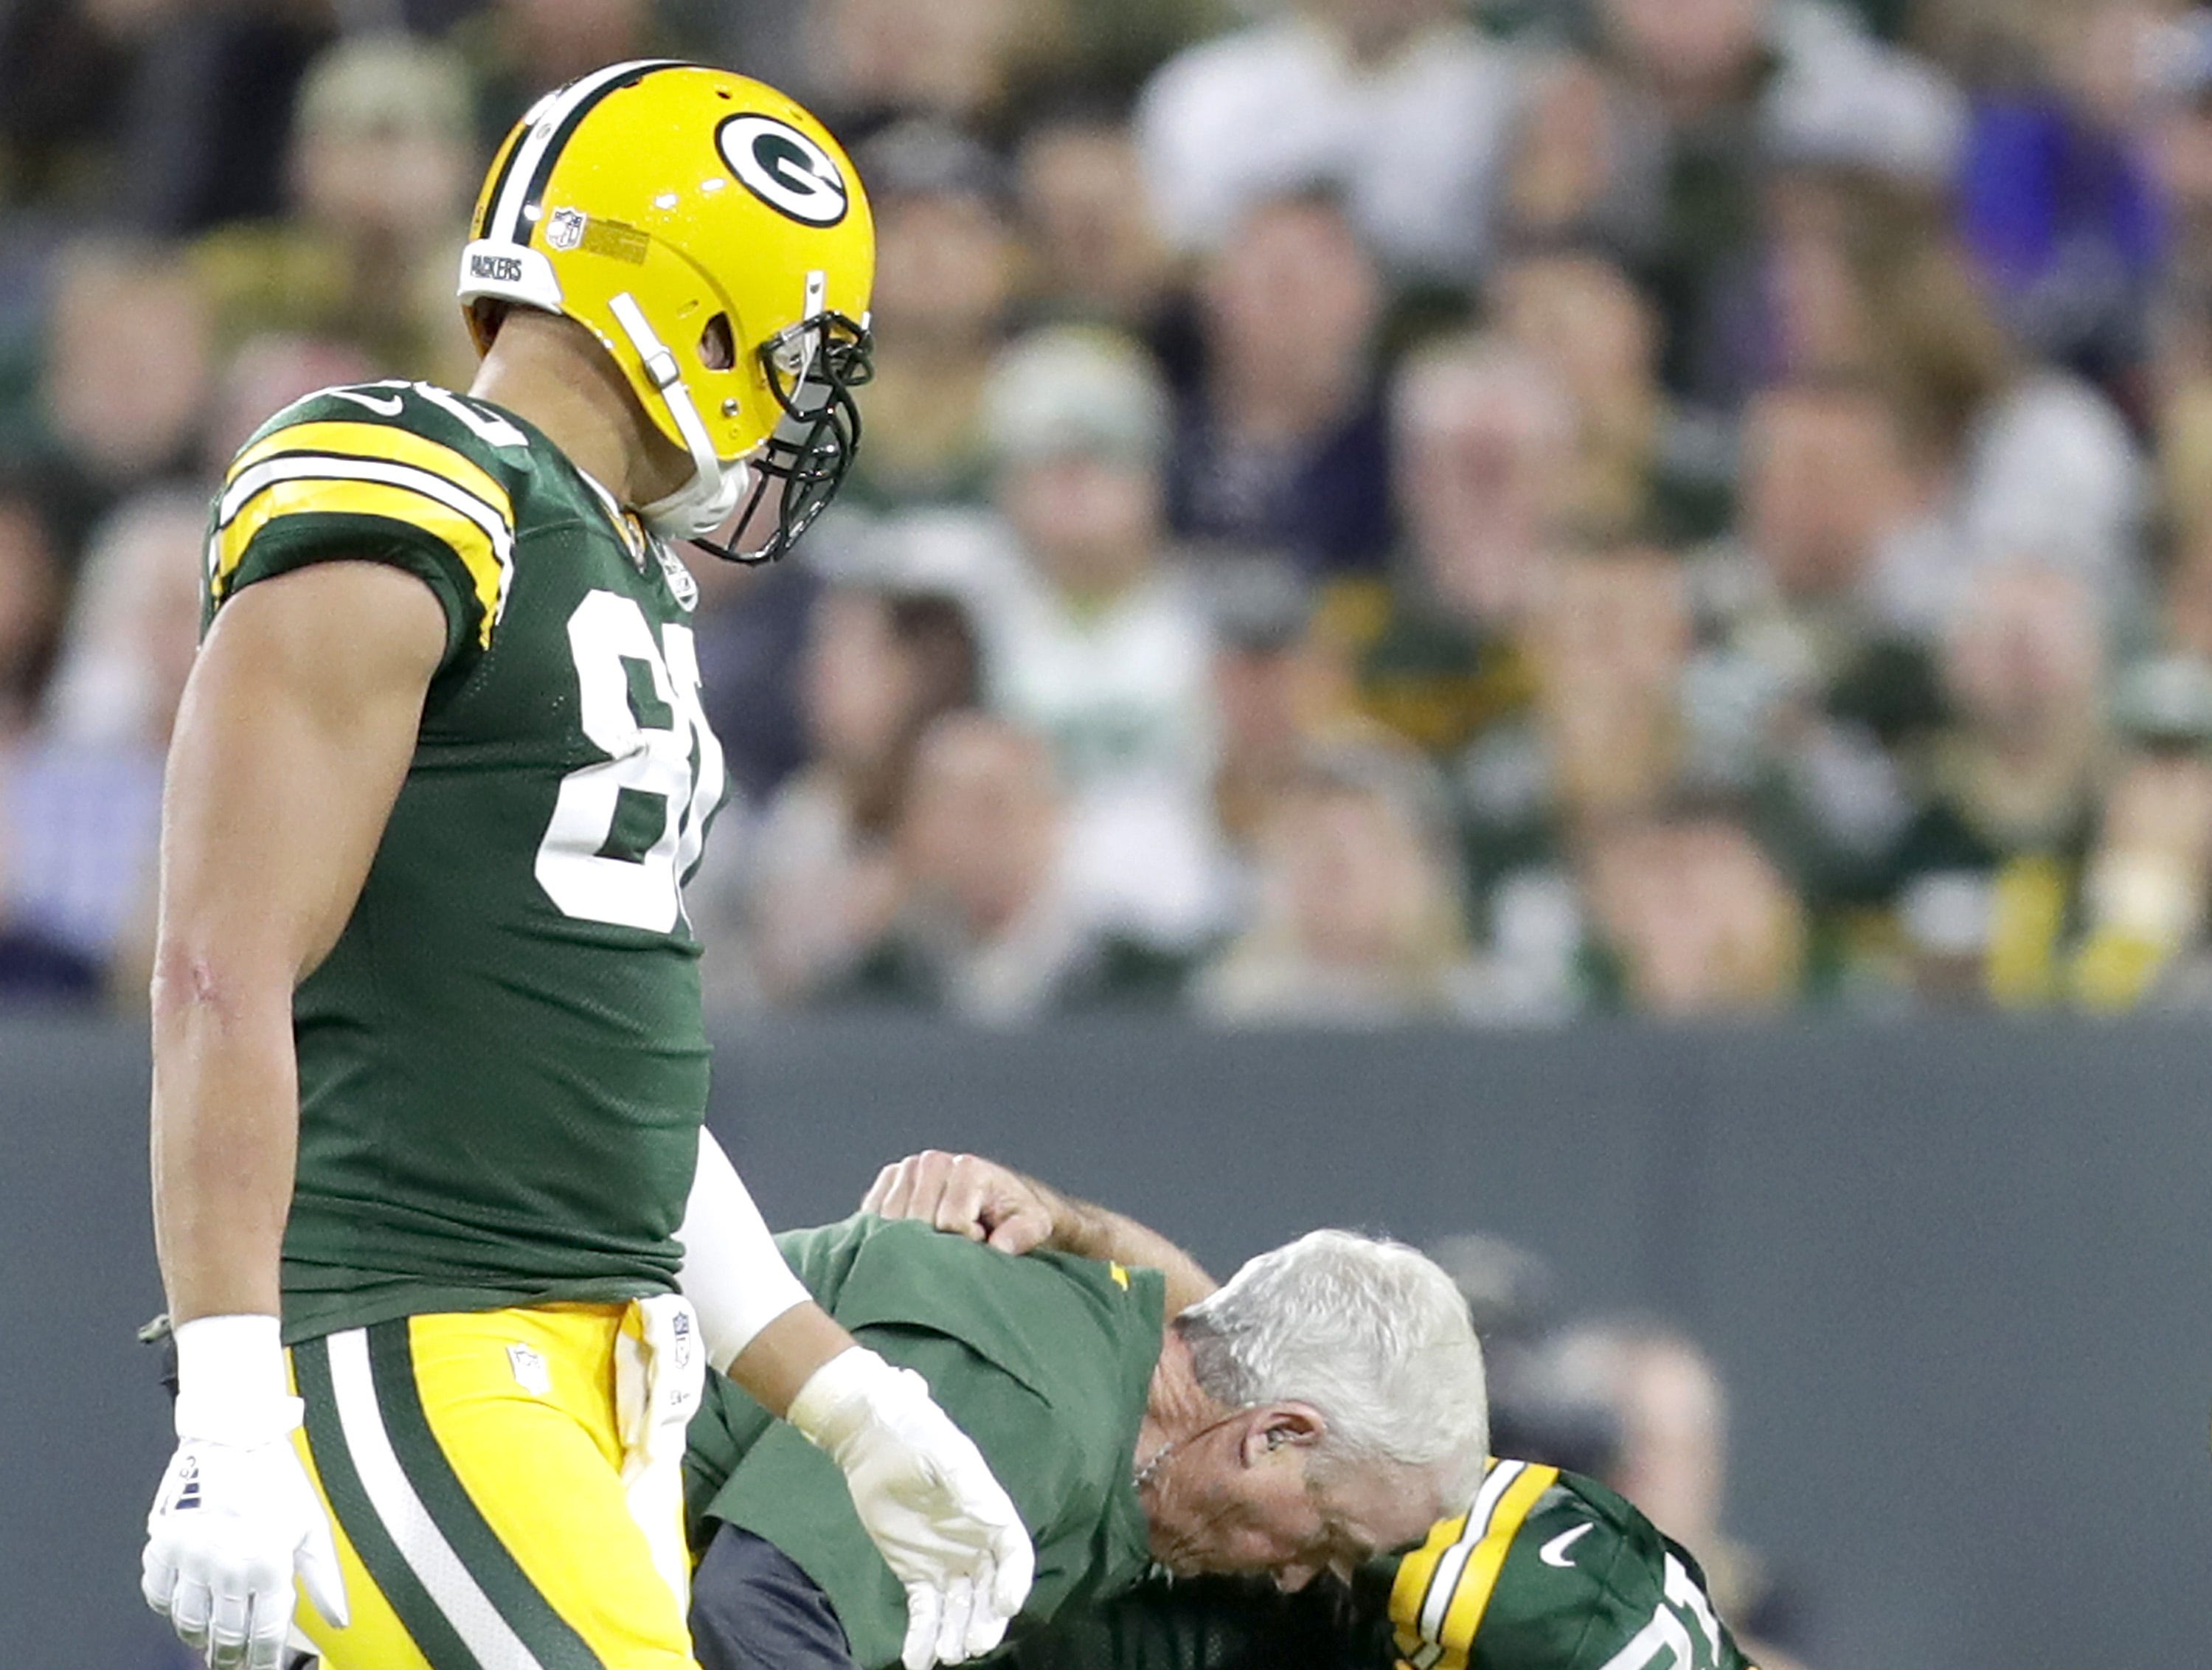 Green Bay Packers' Aaron Rodgers is helped to his feet aftyer being injured in the second quarter against the Chicago Bears in the season opener on Sunday, September 9, 2018, at Lambeau Field in Green Bay, Wis.